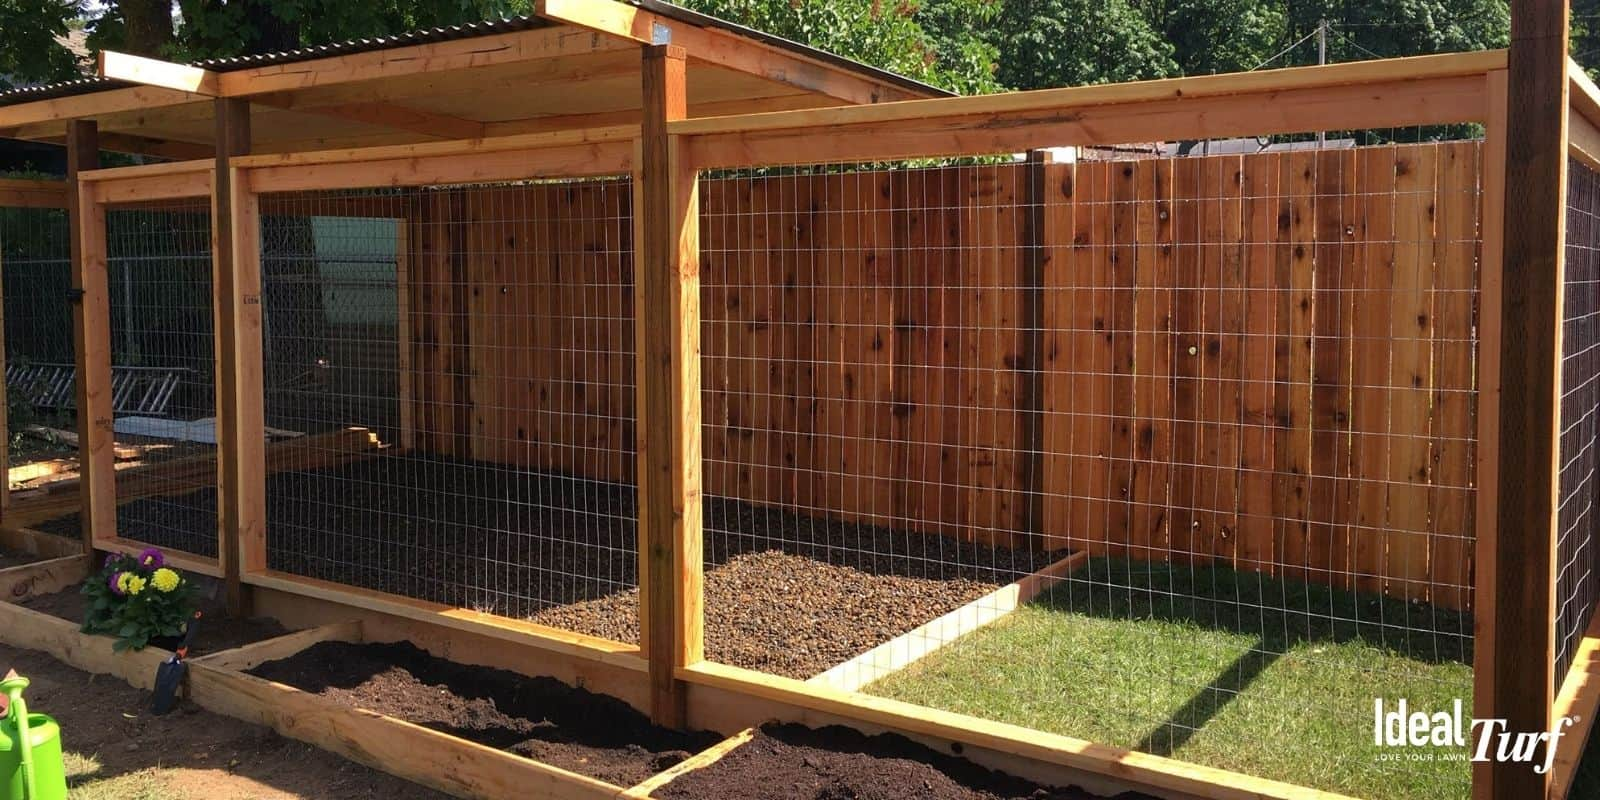 Dog Run Wood Chips or Mulch Ground Cover